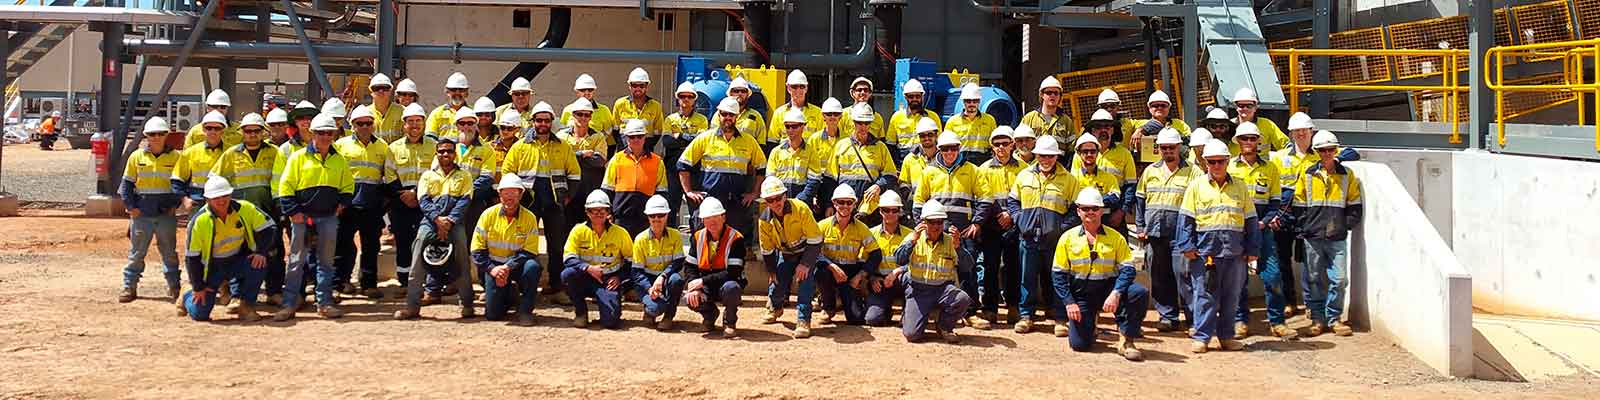 GR Engineering staff members at the Nova Nickel mine site in Fraser Range, Western Australia.